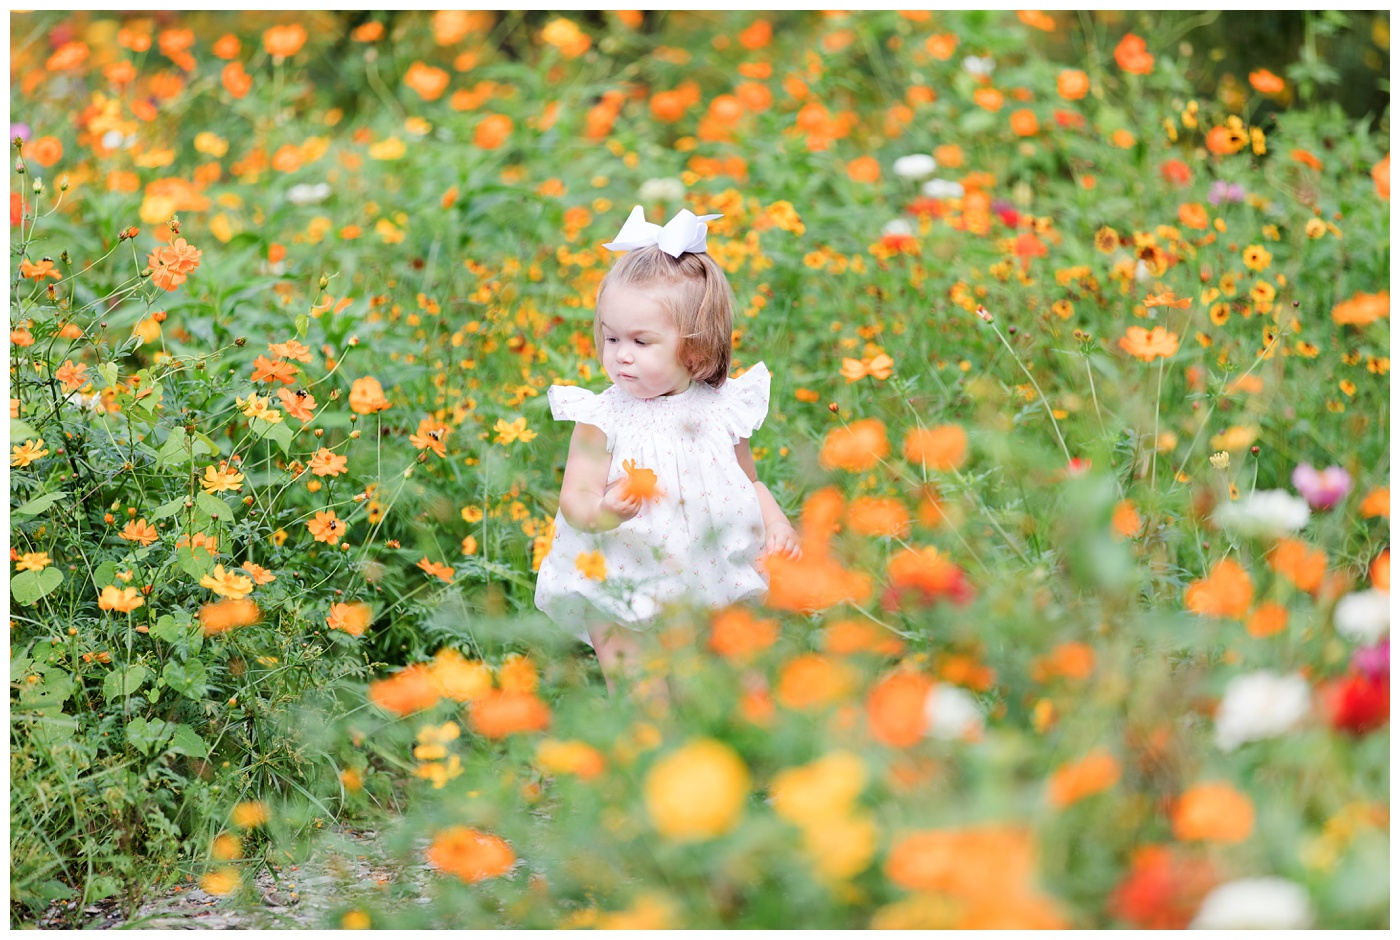 Tori in the Wildflowers | Childrens Portrait Photographer